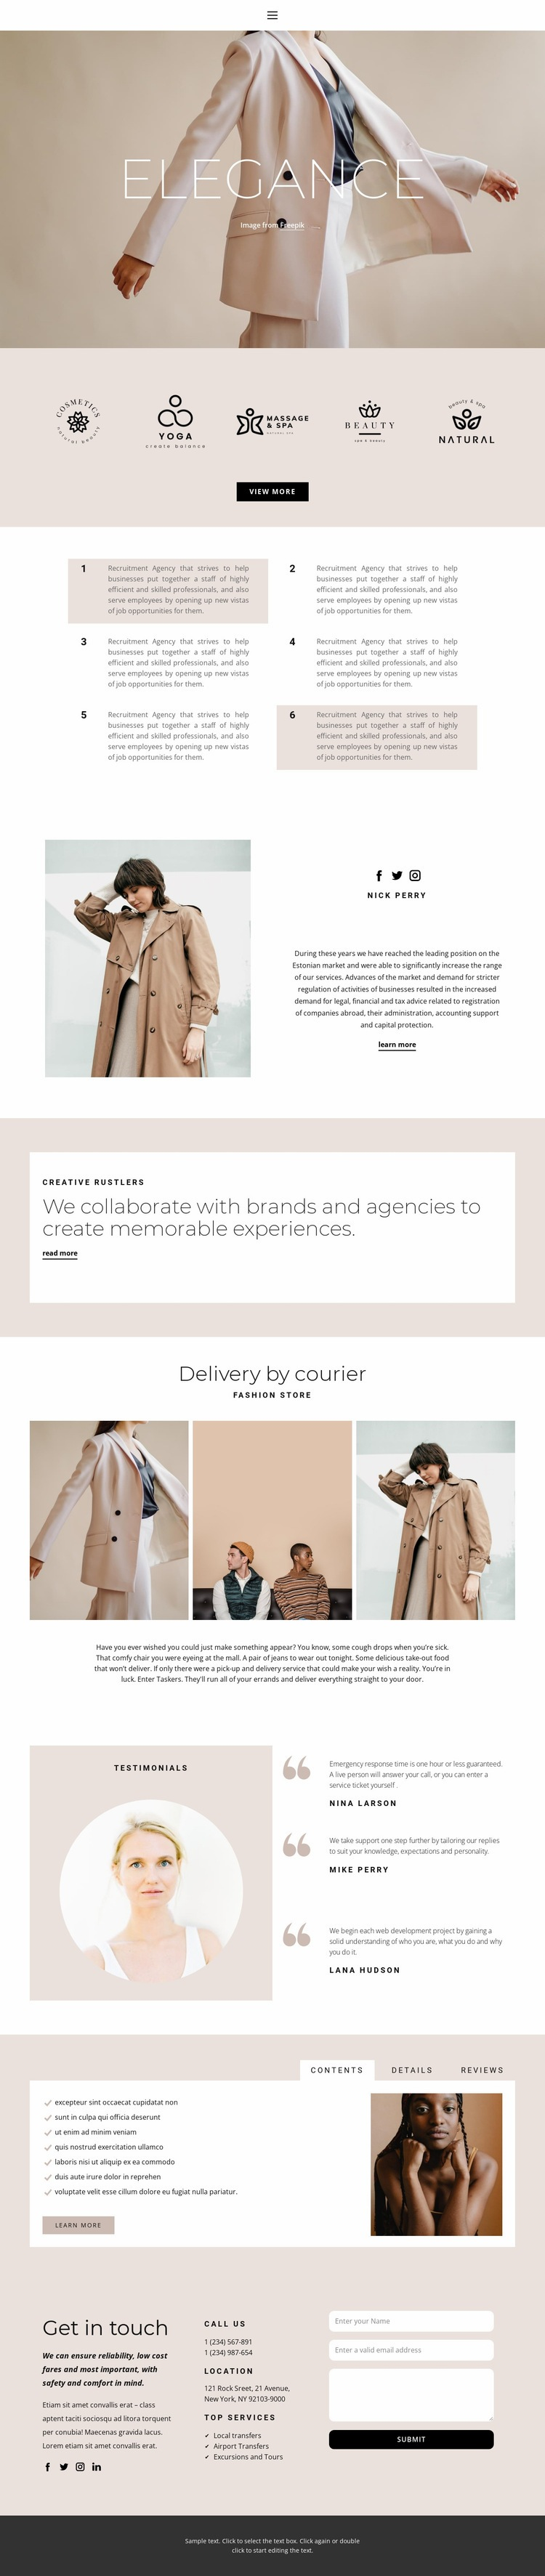 Elegance in fashion Html Code Example